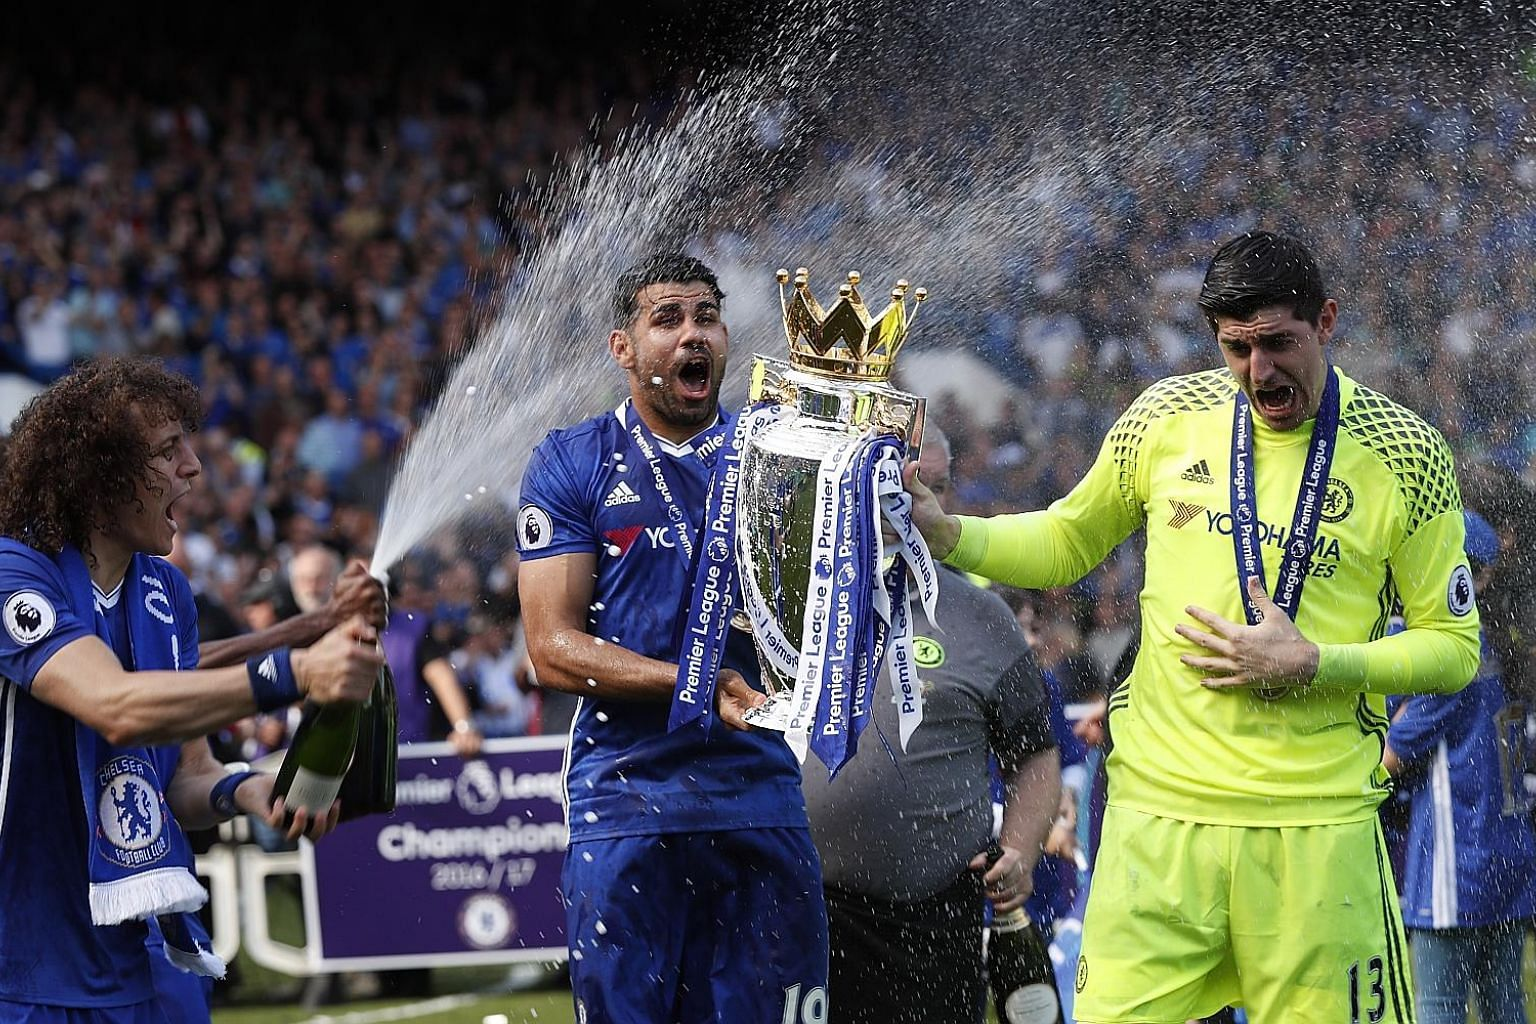 Above: Chelsea's Diego Costa and Thibaut Courtois (right) are sprayed with champagne by team-mate David Luiz during the festivities after their 5-1 win over Sunderland. Left: John Terry gets a guard of honour after his premeditated substitution in th